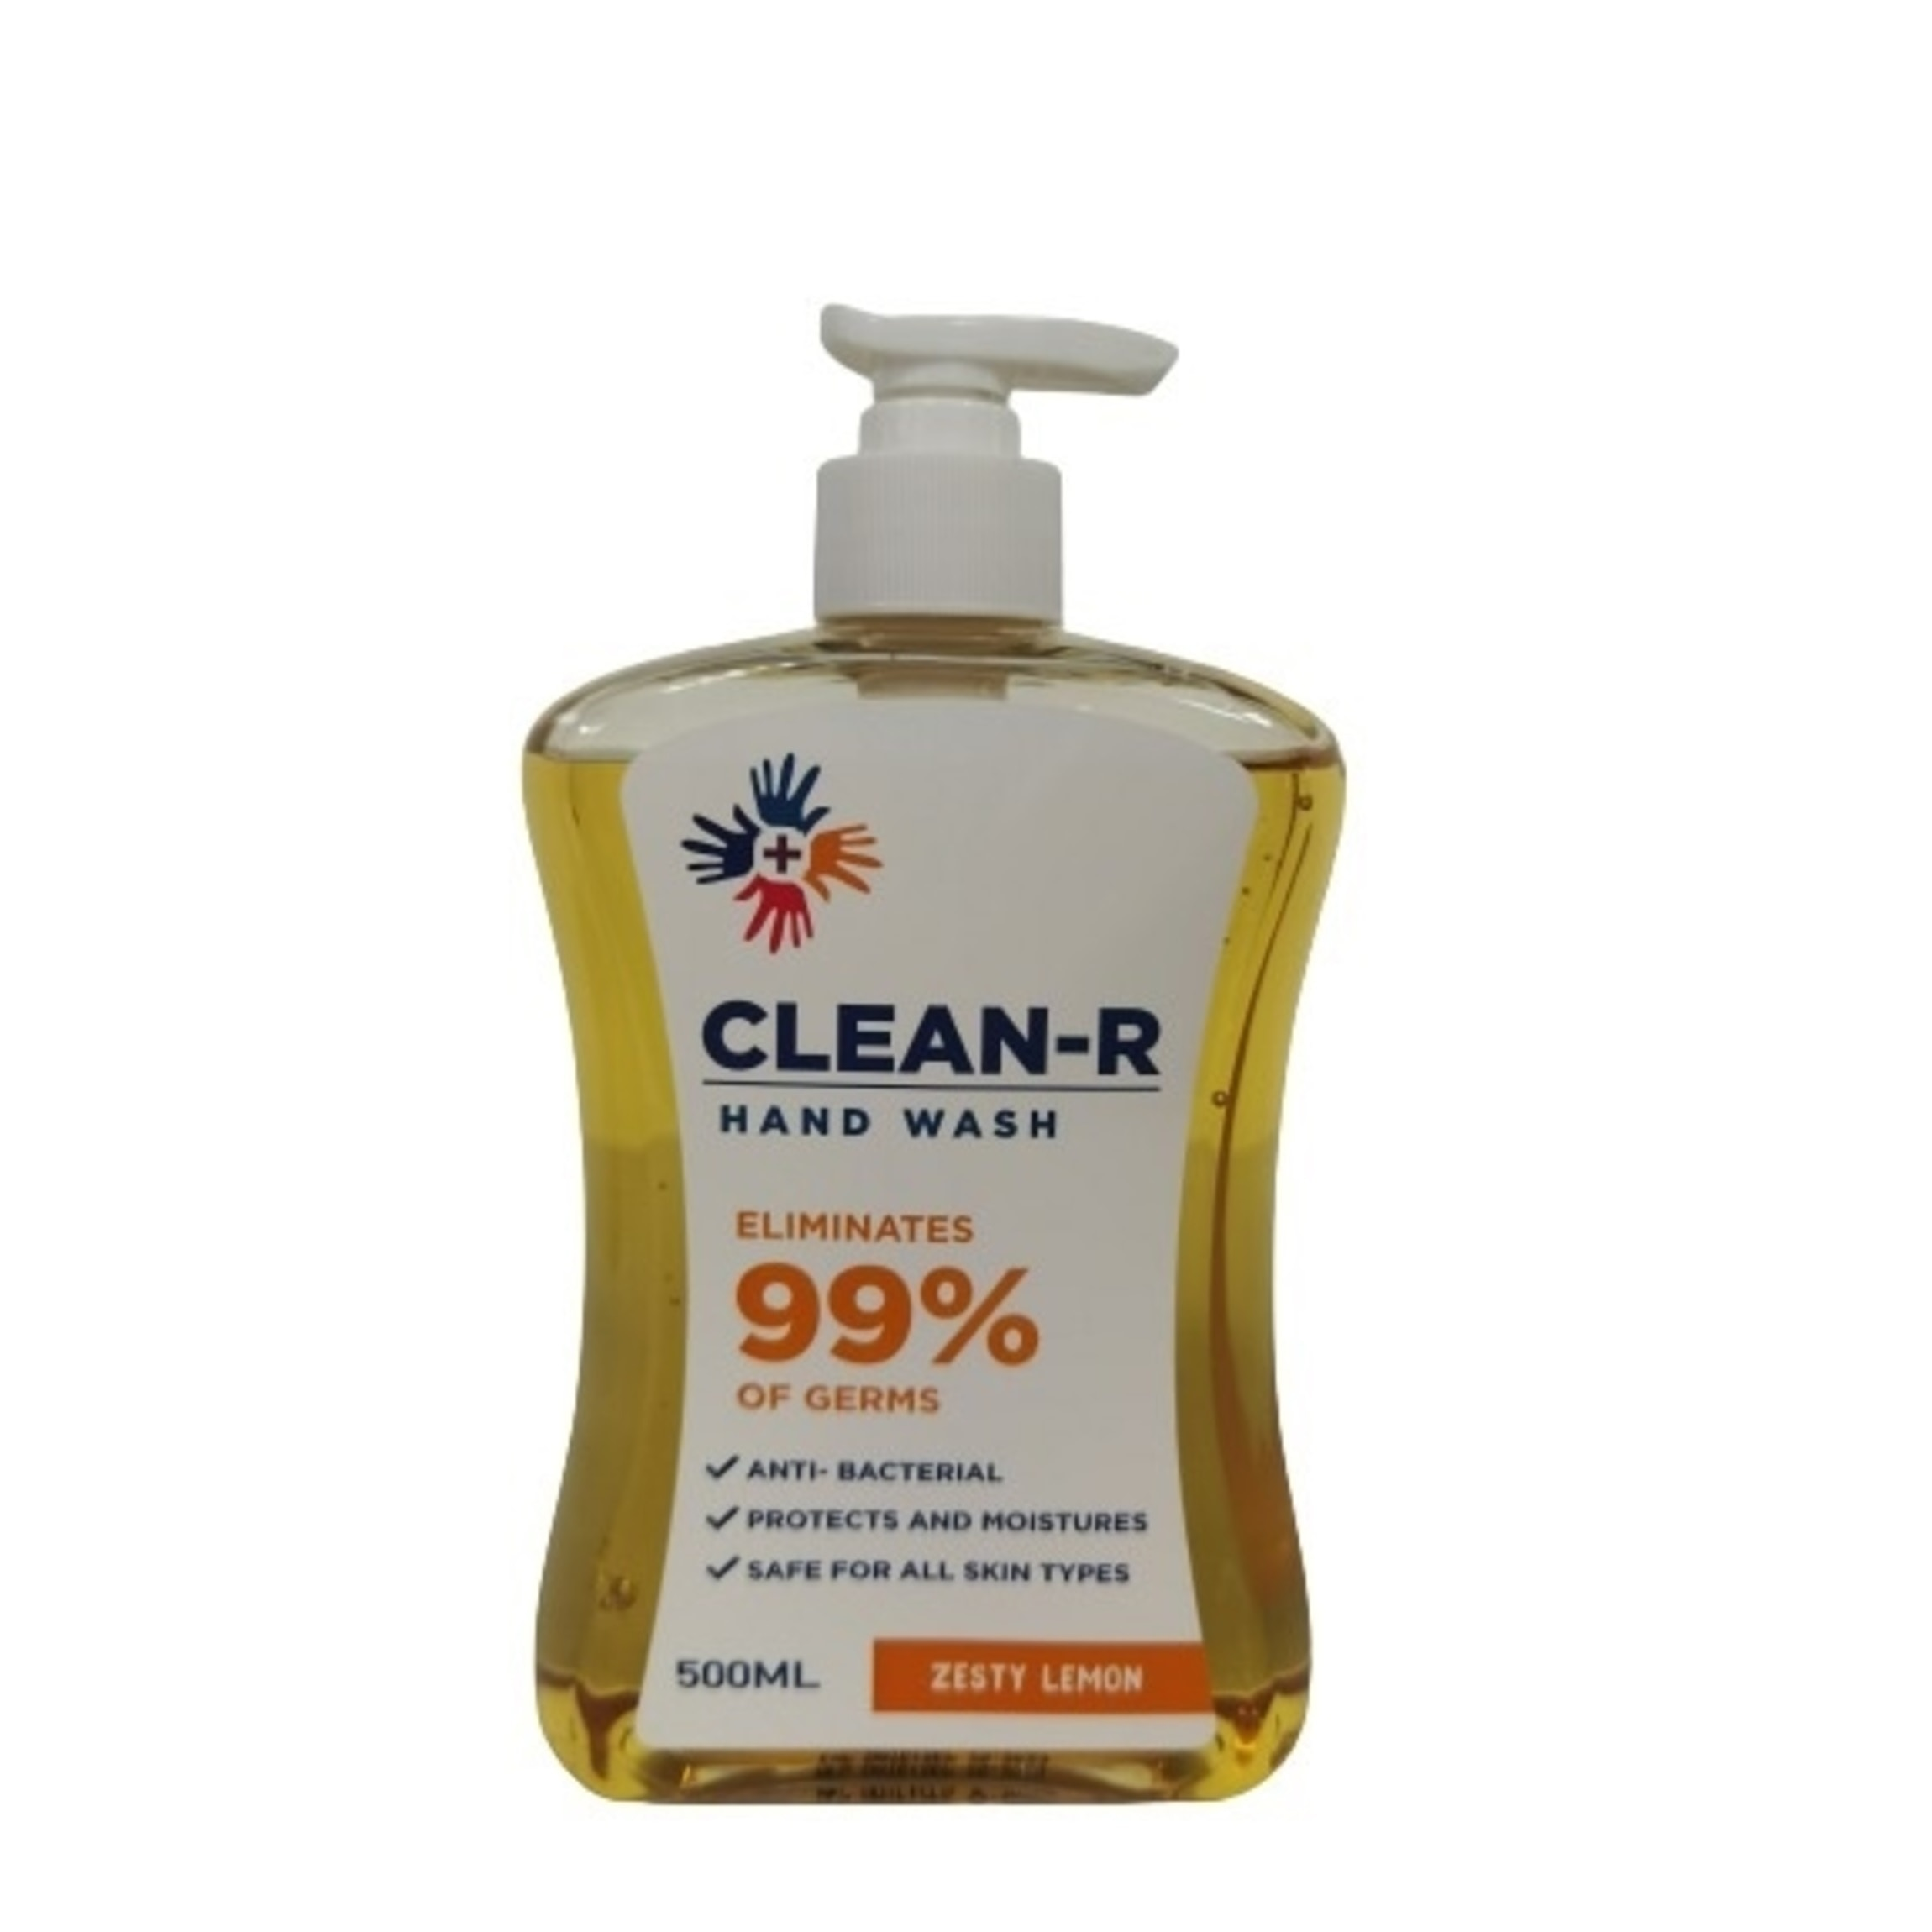 CLEAN RAntibacterial Hand Wash Zesty Lemon 500ml,Hand Soap/SanitizersWhat A Splash: All Products